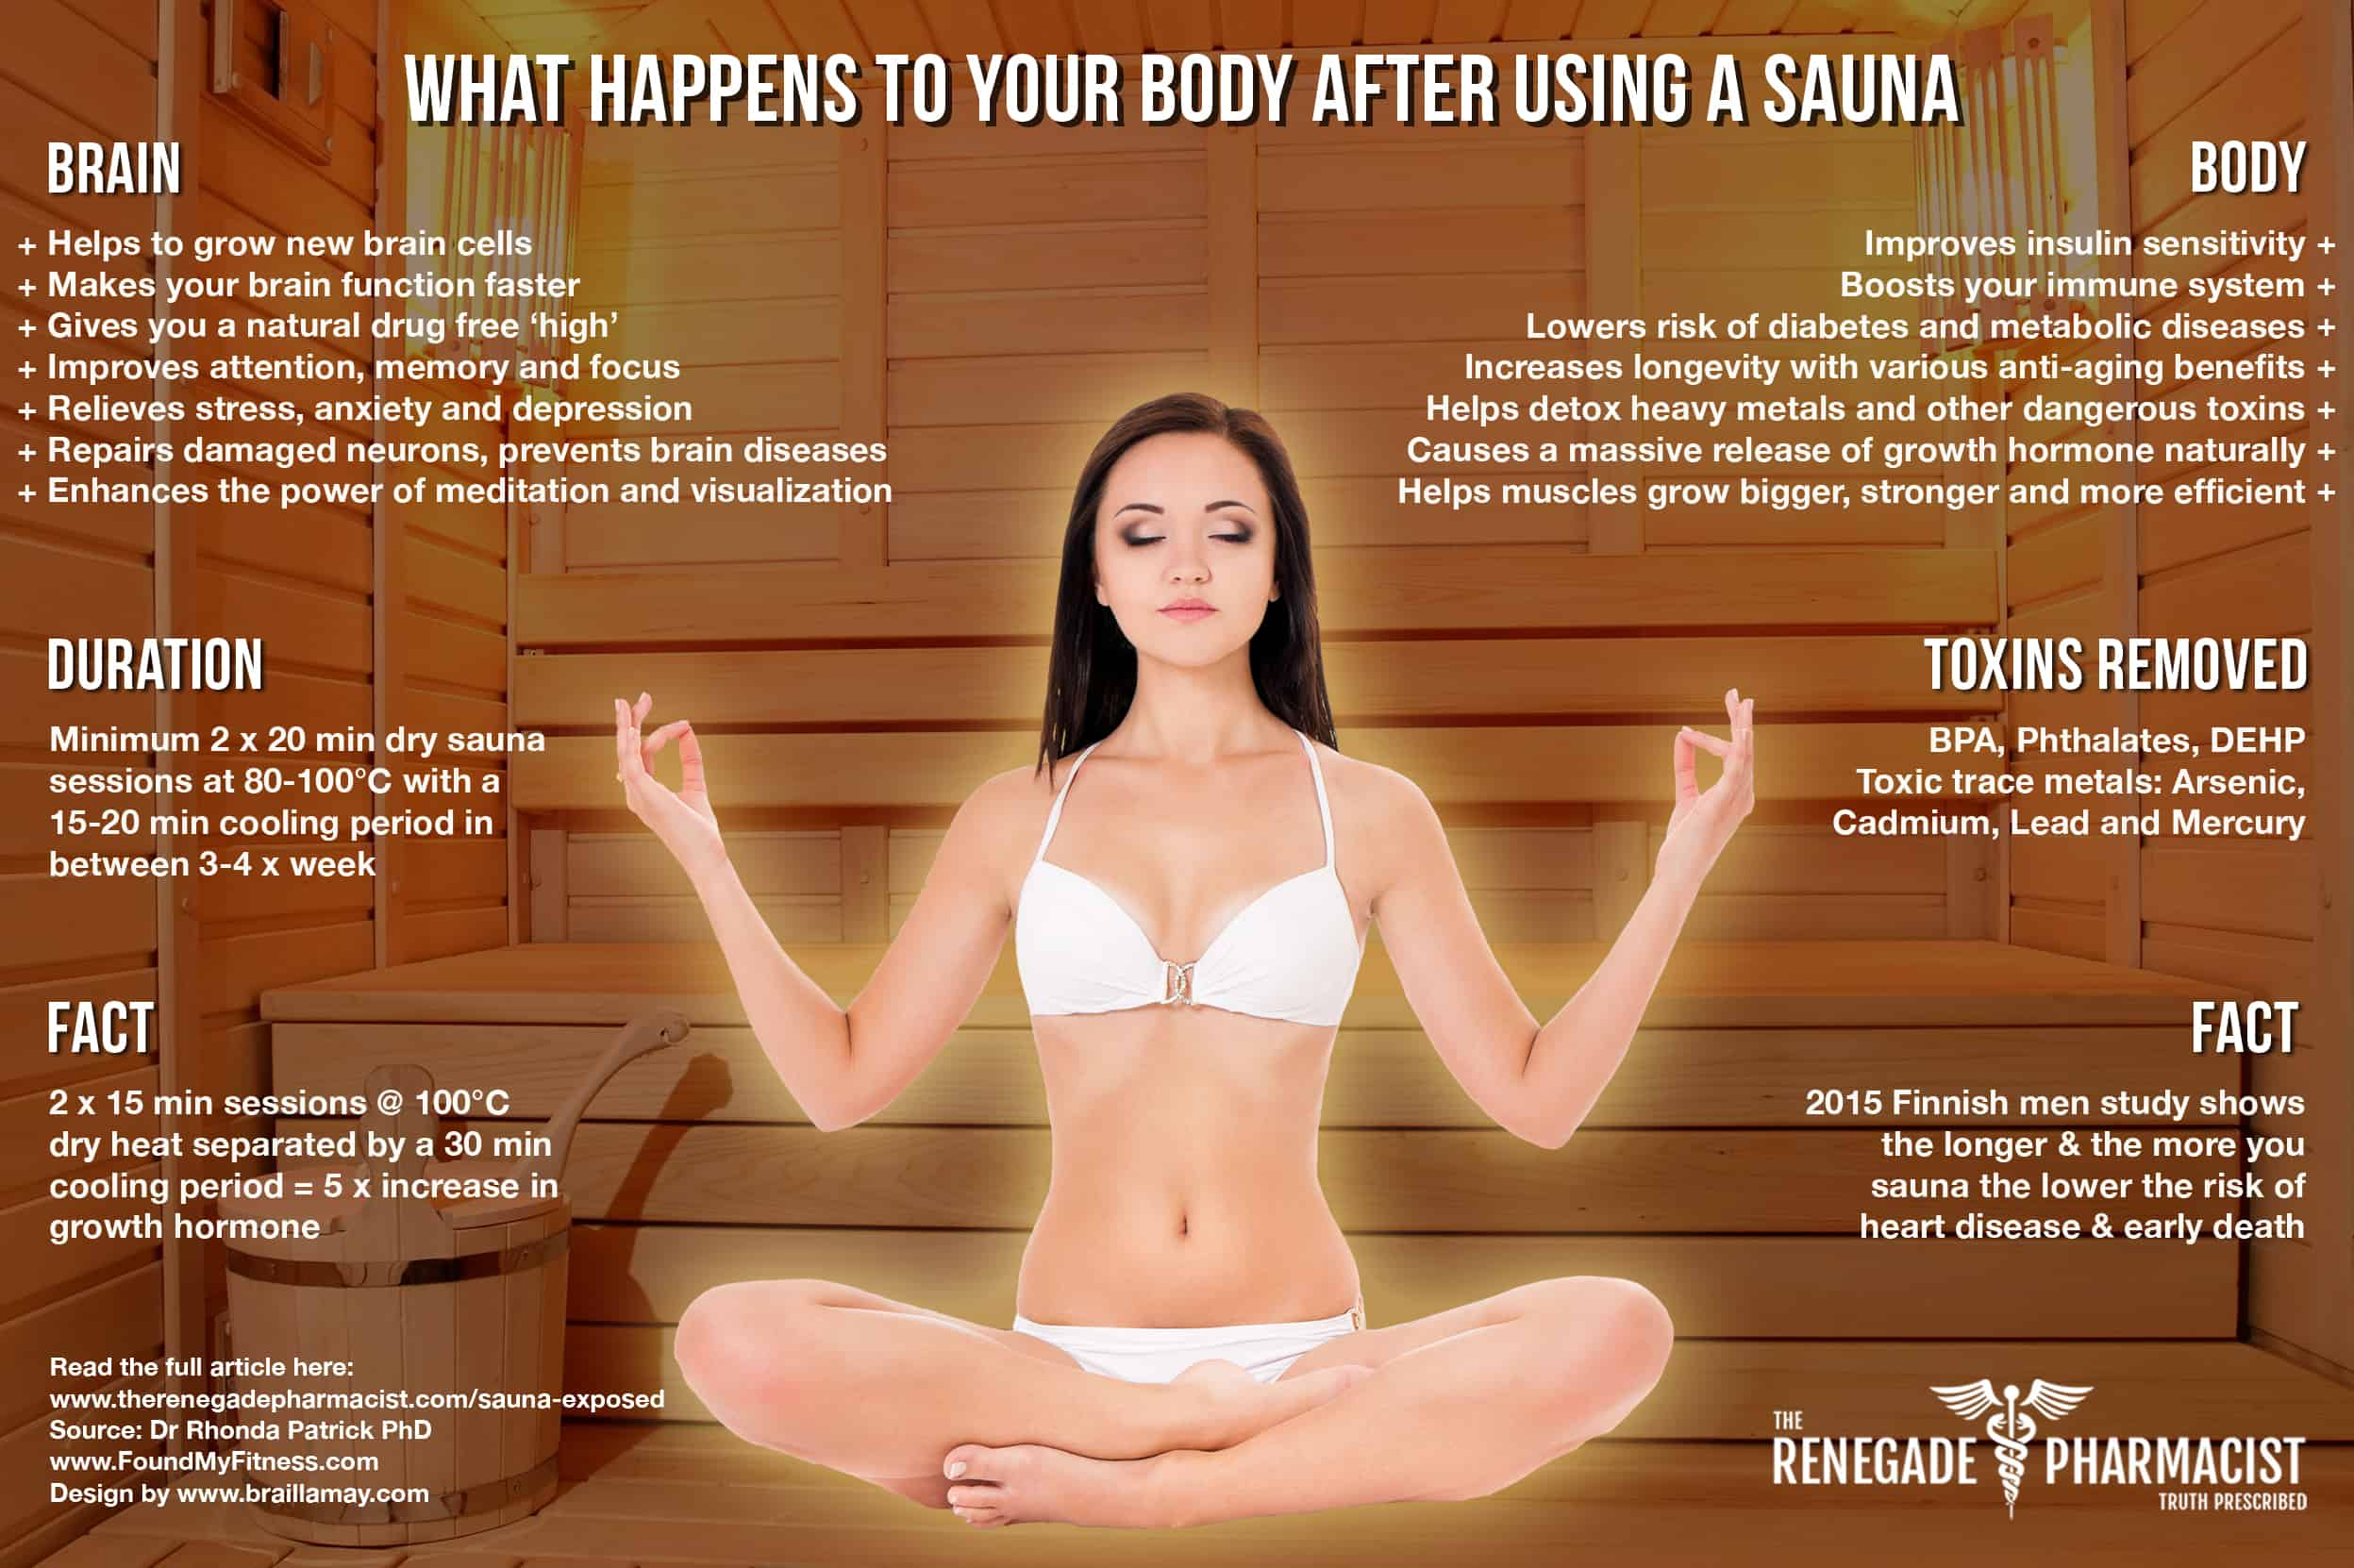 Sauna Exposed What Happens To Your Body After Using A